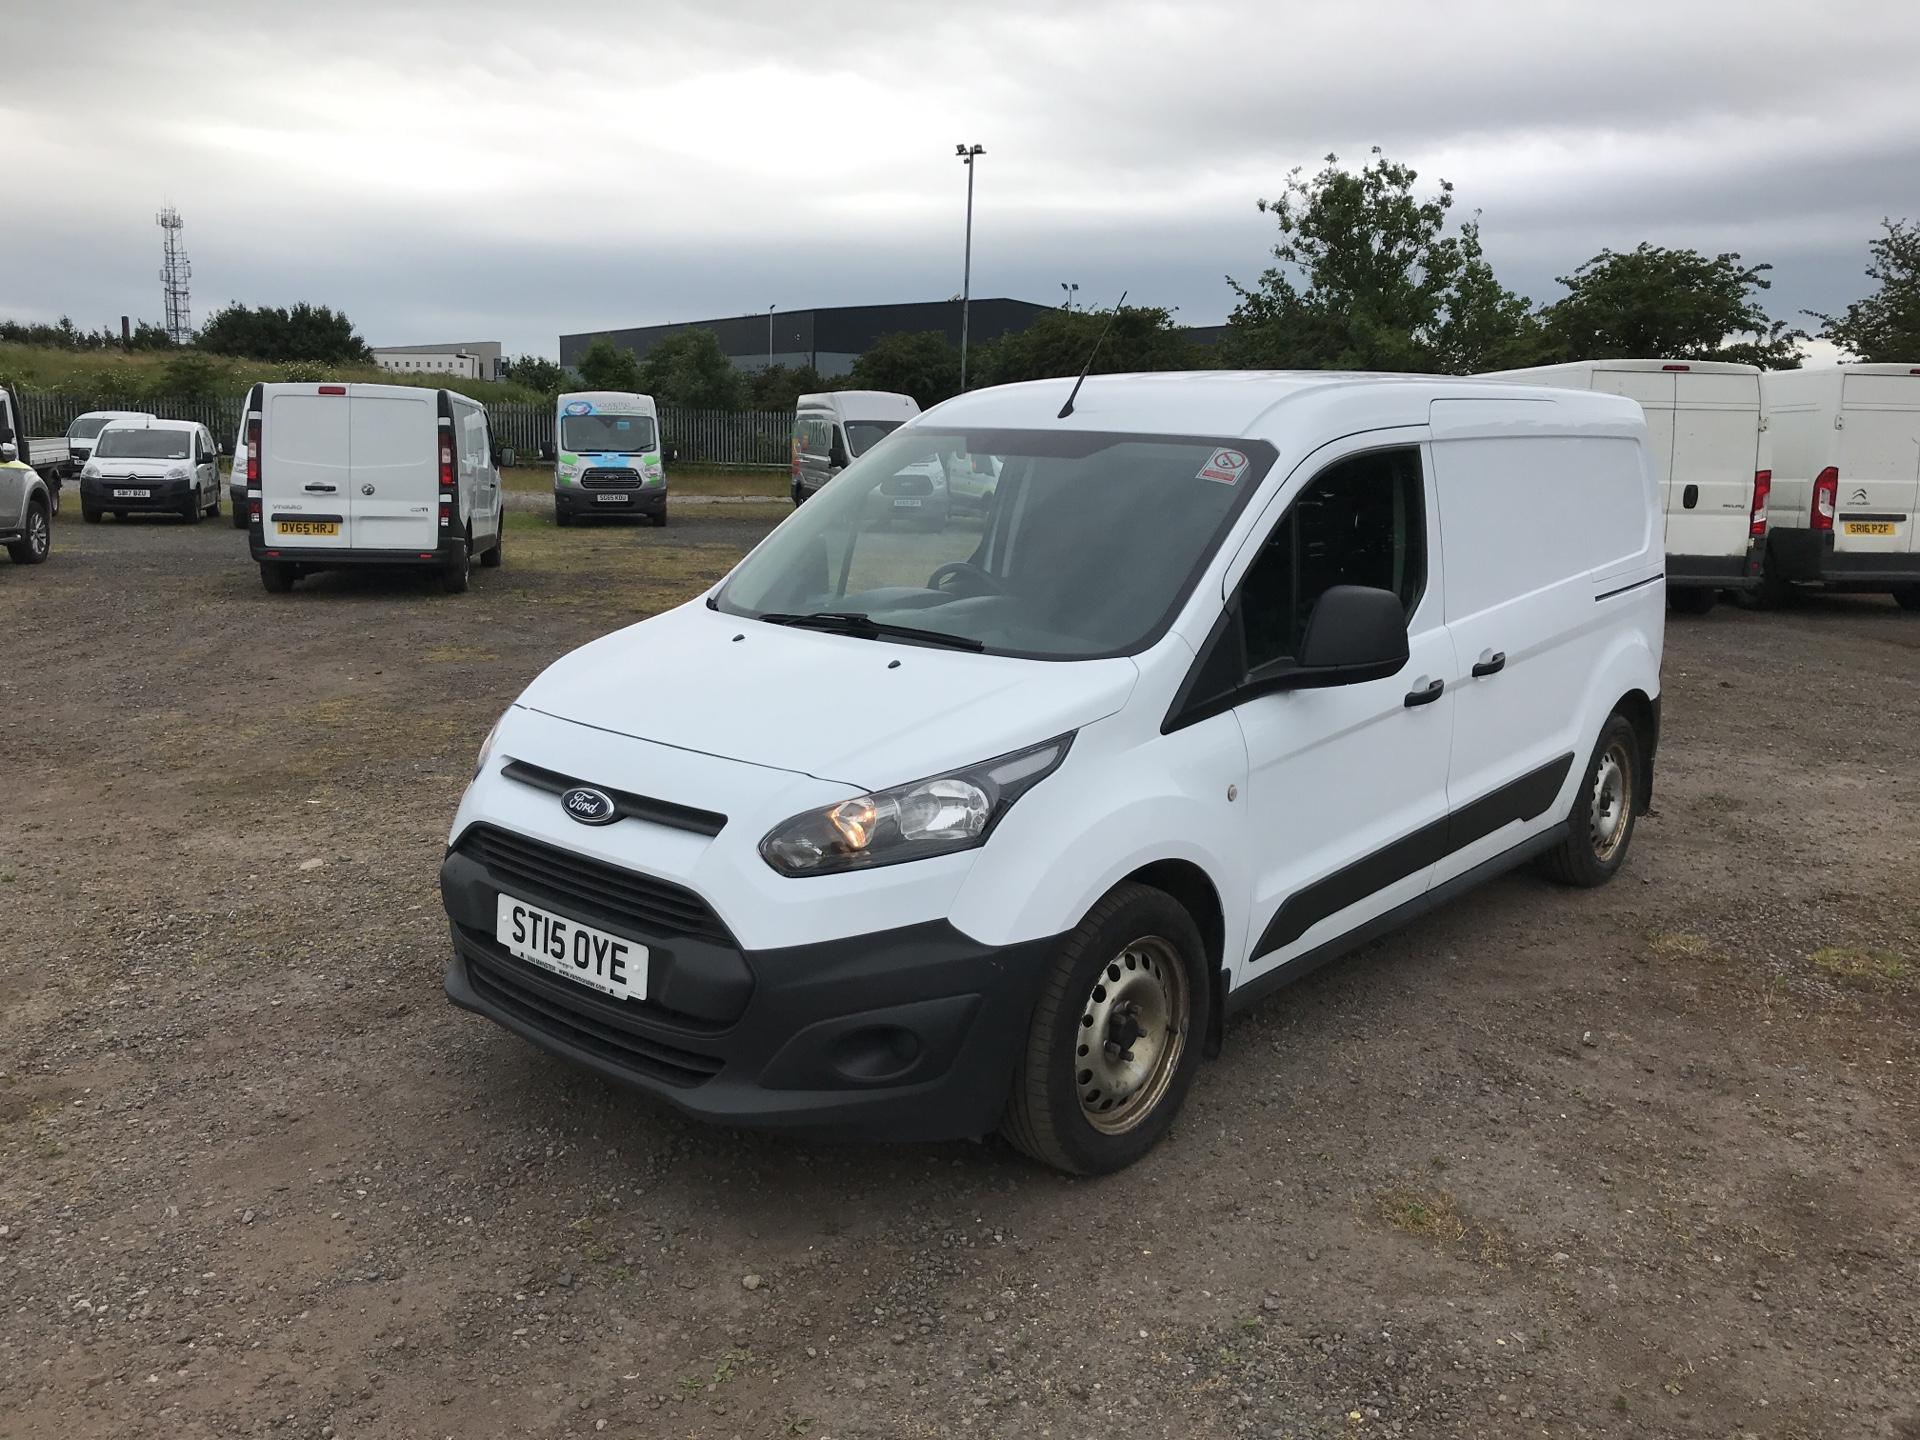 2015 Ford Transit Connect 1.6 Tdci 95Ps D/Cab Van (ST15OYE) Image 7